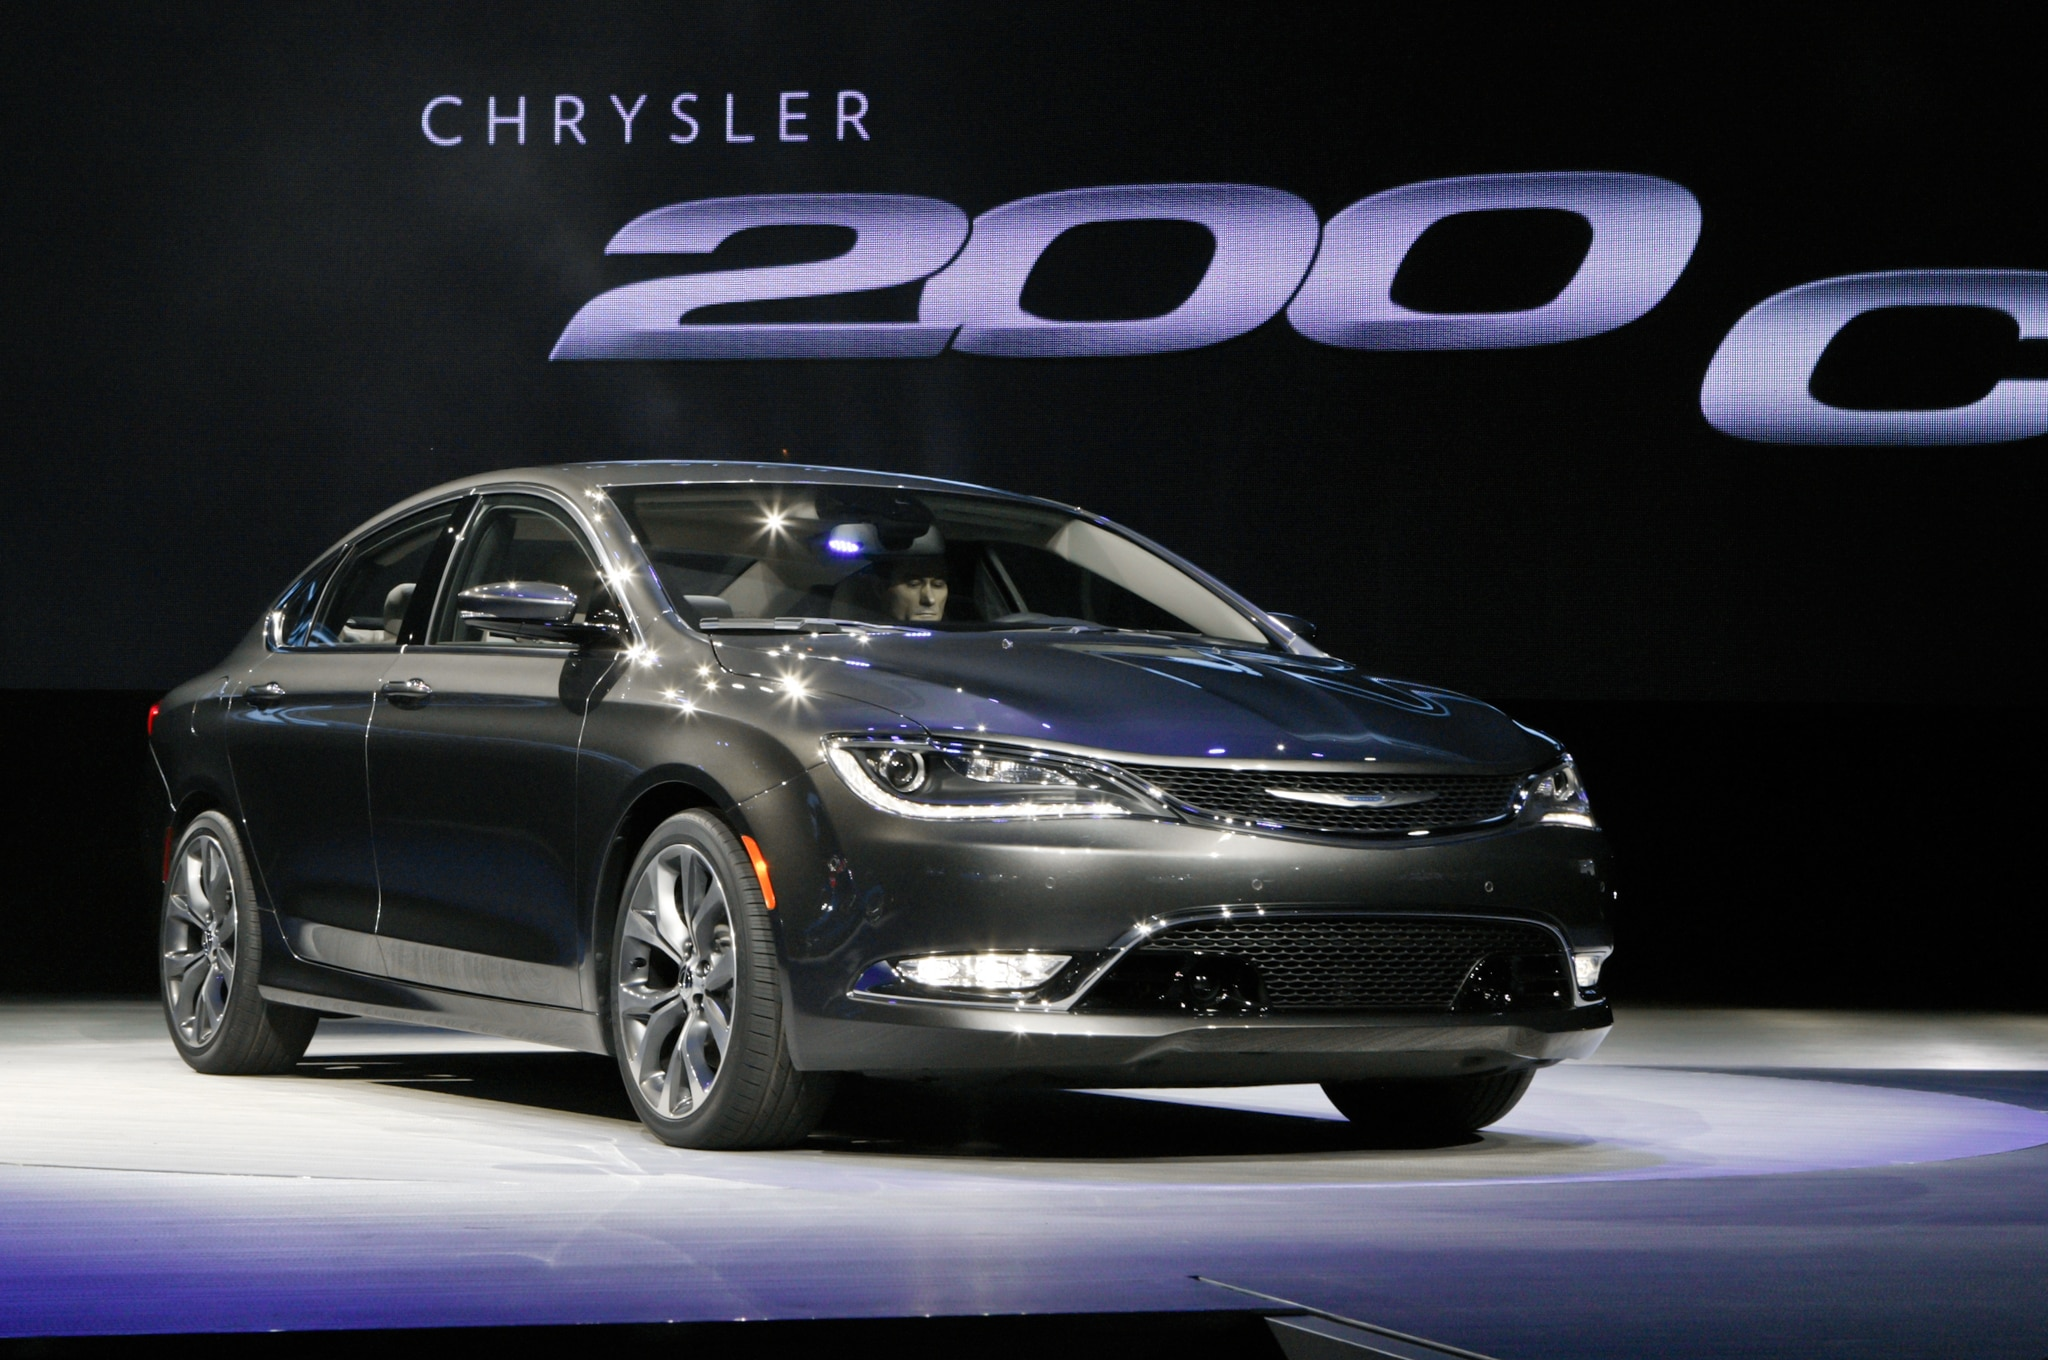 driving the 2015 dodge charger awd 2015 chrysler 200c awd in snow. Black Bedroom Furniture Sets. Home Design Ideas